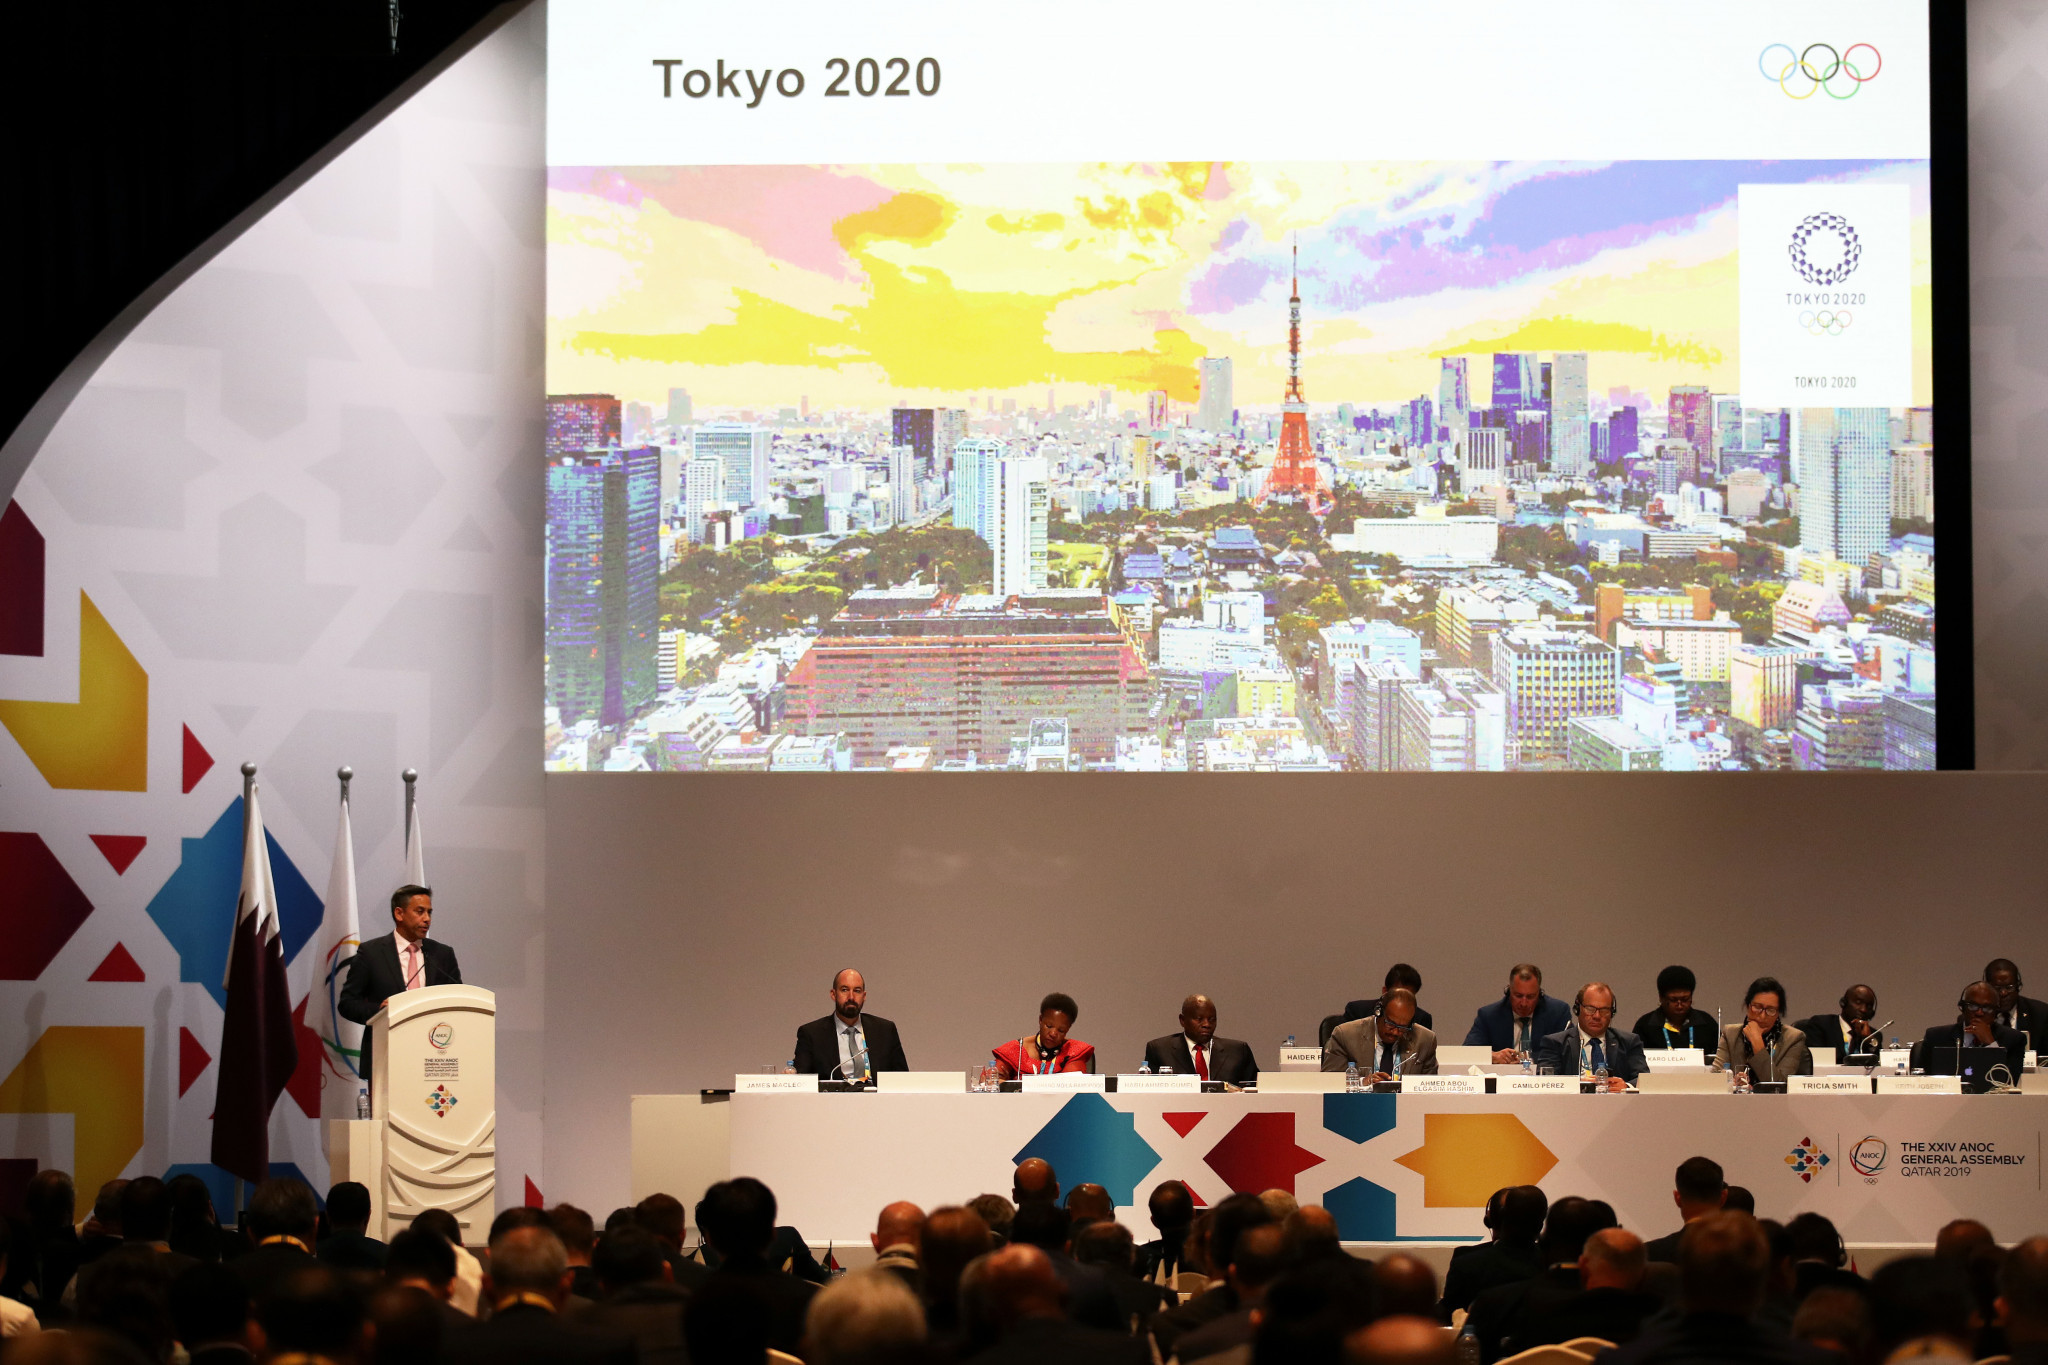 Delegates were updated on the Tokyo 2020 Olympics ©Getty Images